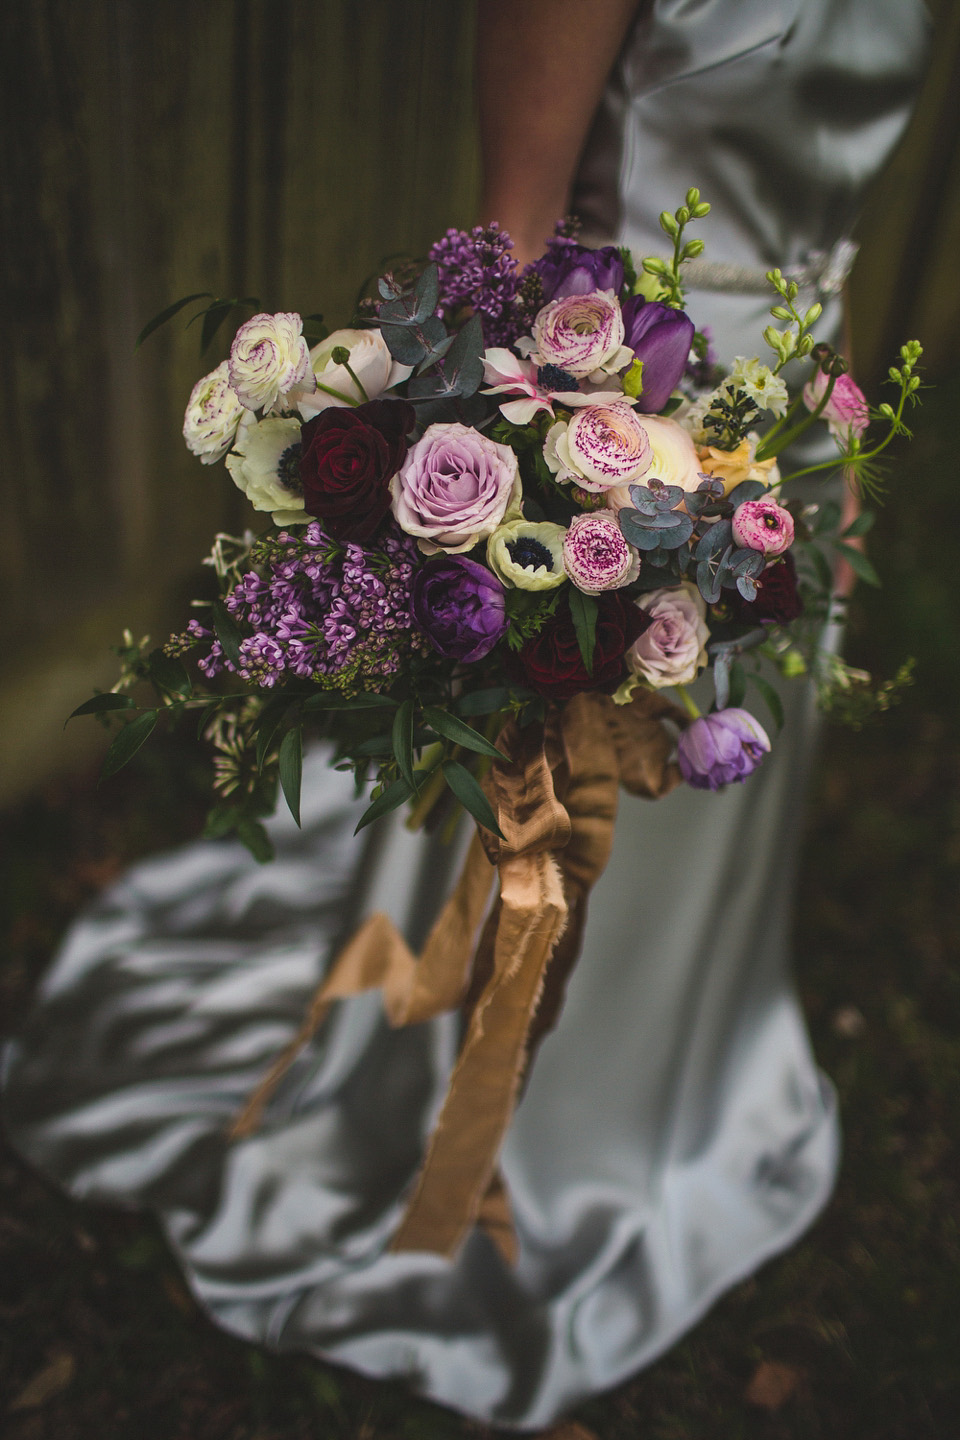 Kate Beaumont - Bespoke, Vintage Inspired Wedding Dresses, Hand Made in Yorkshire (Bridal Fashion Fashion & Beauty )